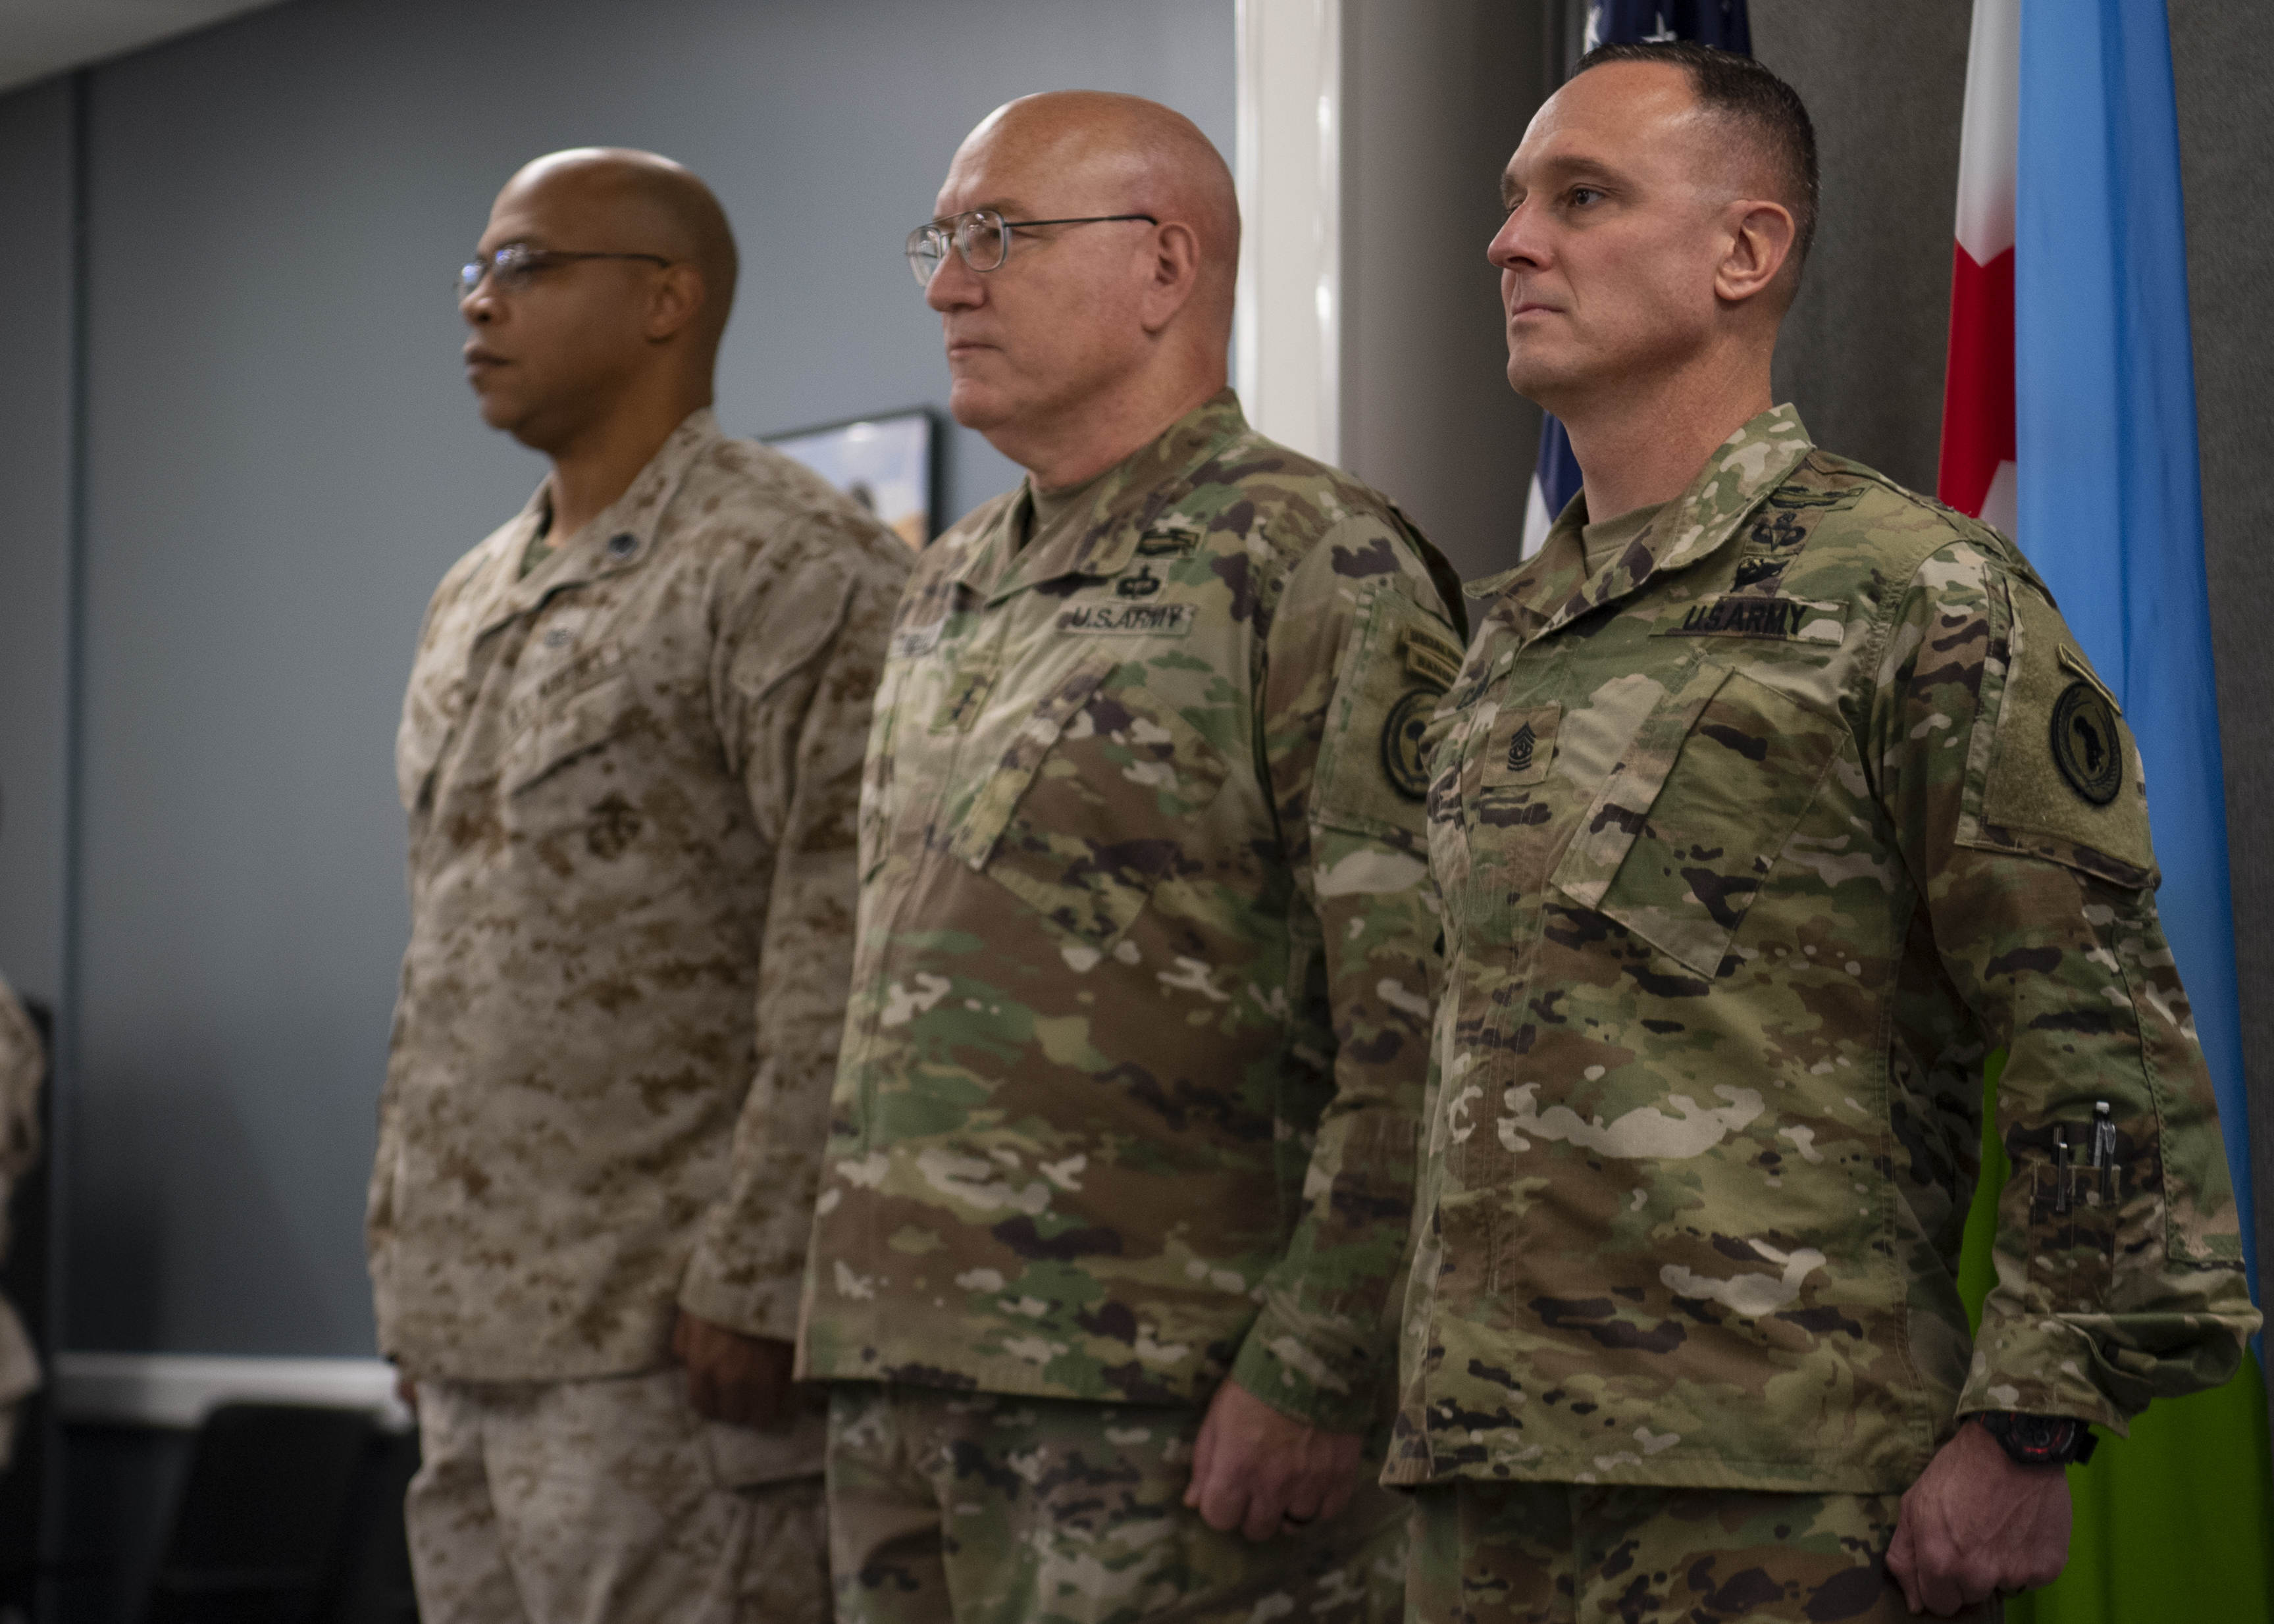 U.S. Army Maj. Gen. Michael Turello, commanding general, Combined Joint Task Force-Horn of Africa (CJTF-HOA), center, presides over the change of responsibility ceremony between incoming CJTF-HOA command senior enlisted leader, U.S. Army Command Sgt. Maj. Shawn Carns, and outgoing CSEL, U.S. Marine Corps Master Gunnery Sgt. Vito Harris, at Camp Lemonnier, Djibouti, July 22, 2019. The CSEL is the principal advisor to the commander and bears the special responsibility of guardianship for all. (U.S. Air Force photo by Staff Sgt. J.D. Strong II)